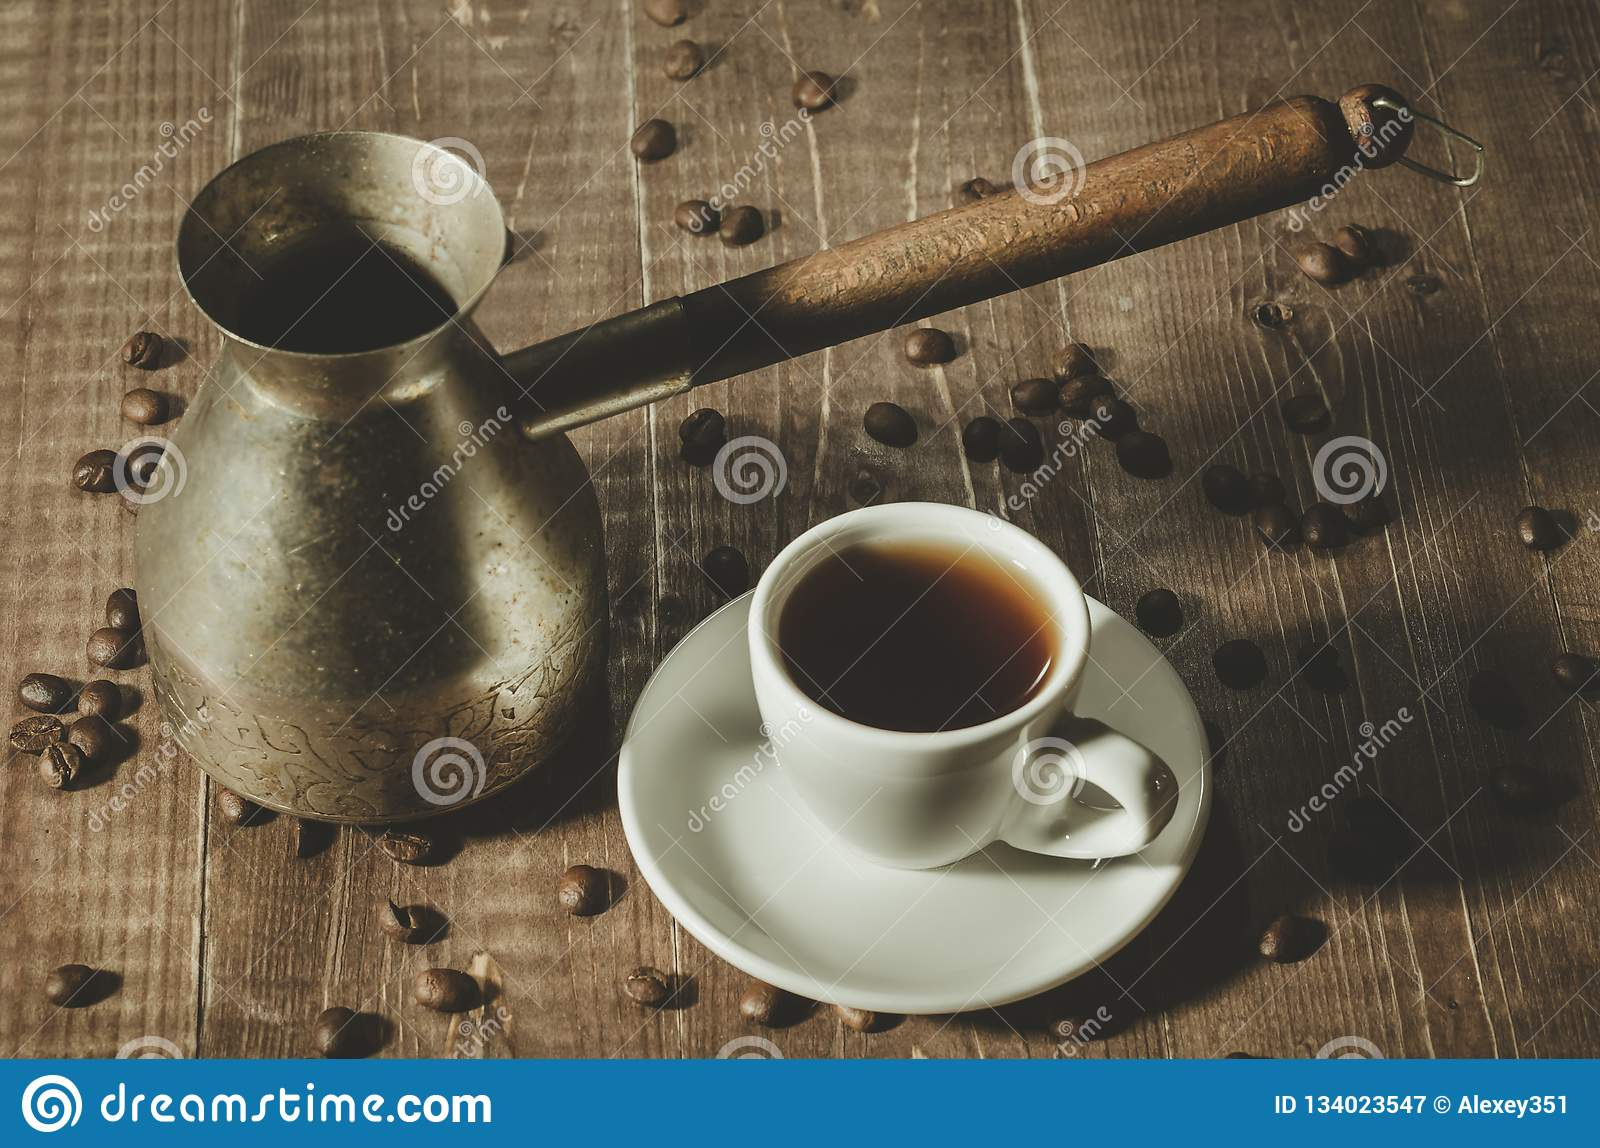 Old coffee pot, hot cup and coffee beans on dark rustic background/Old coffee pot, hot cup and coffee beans on dark rustic